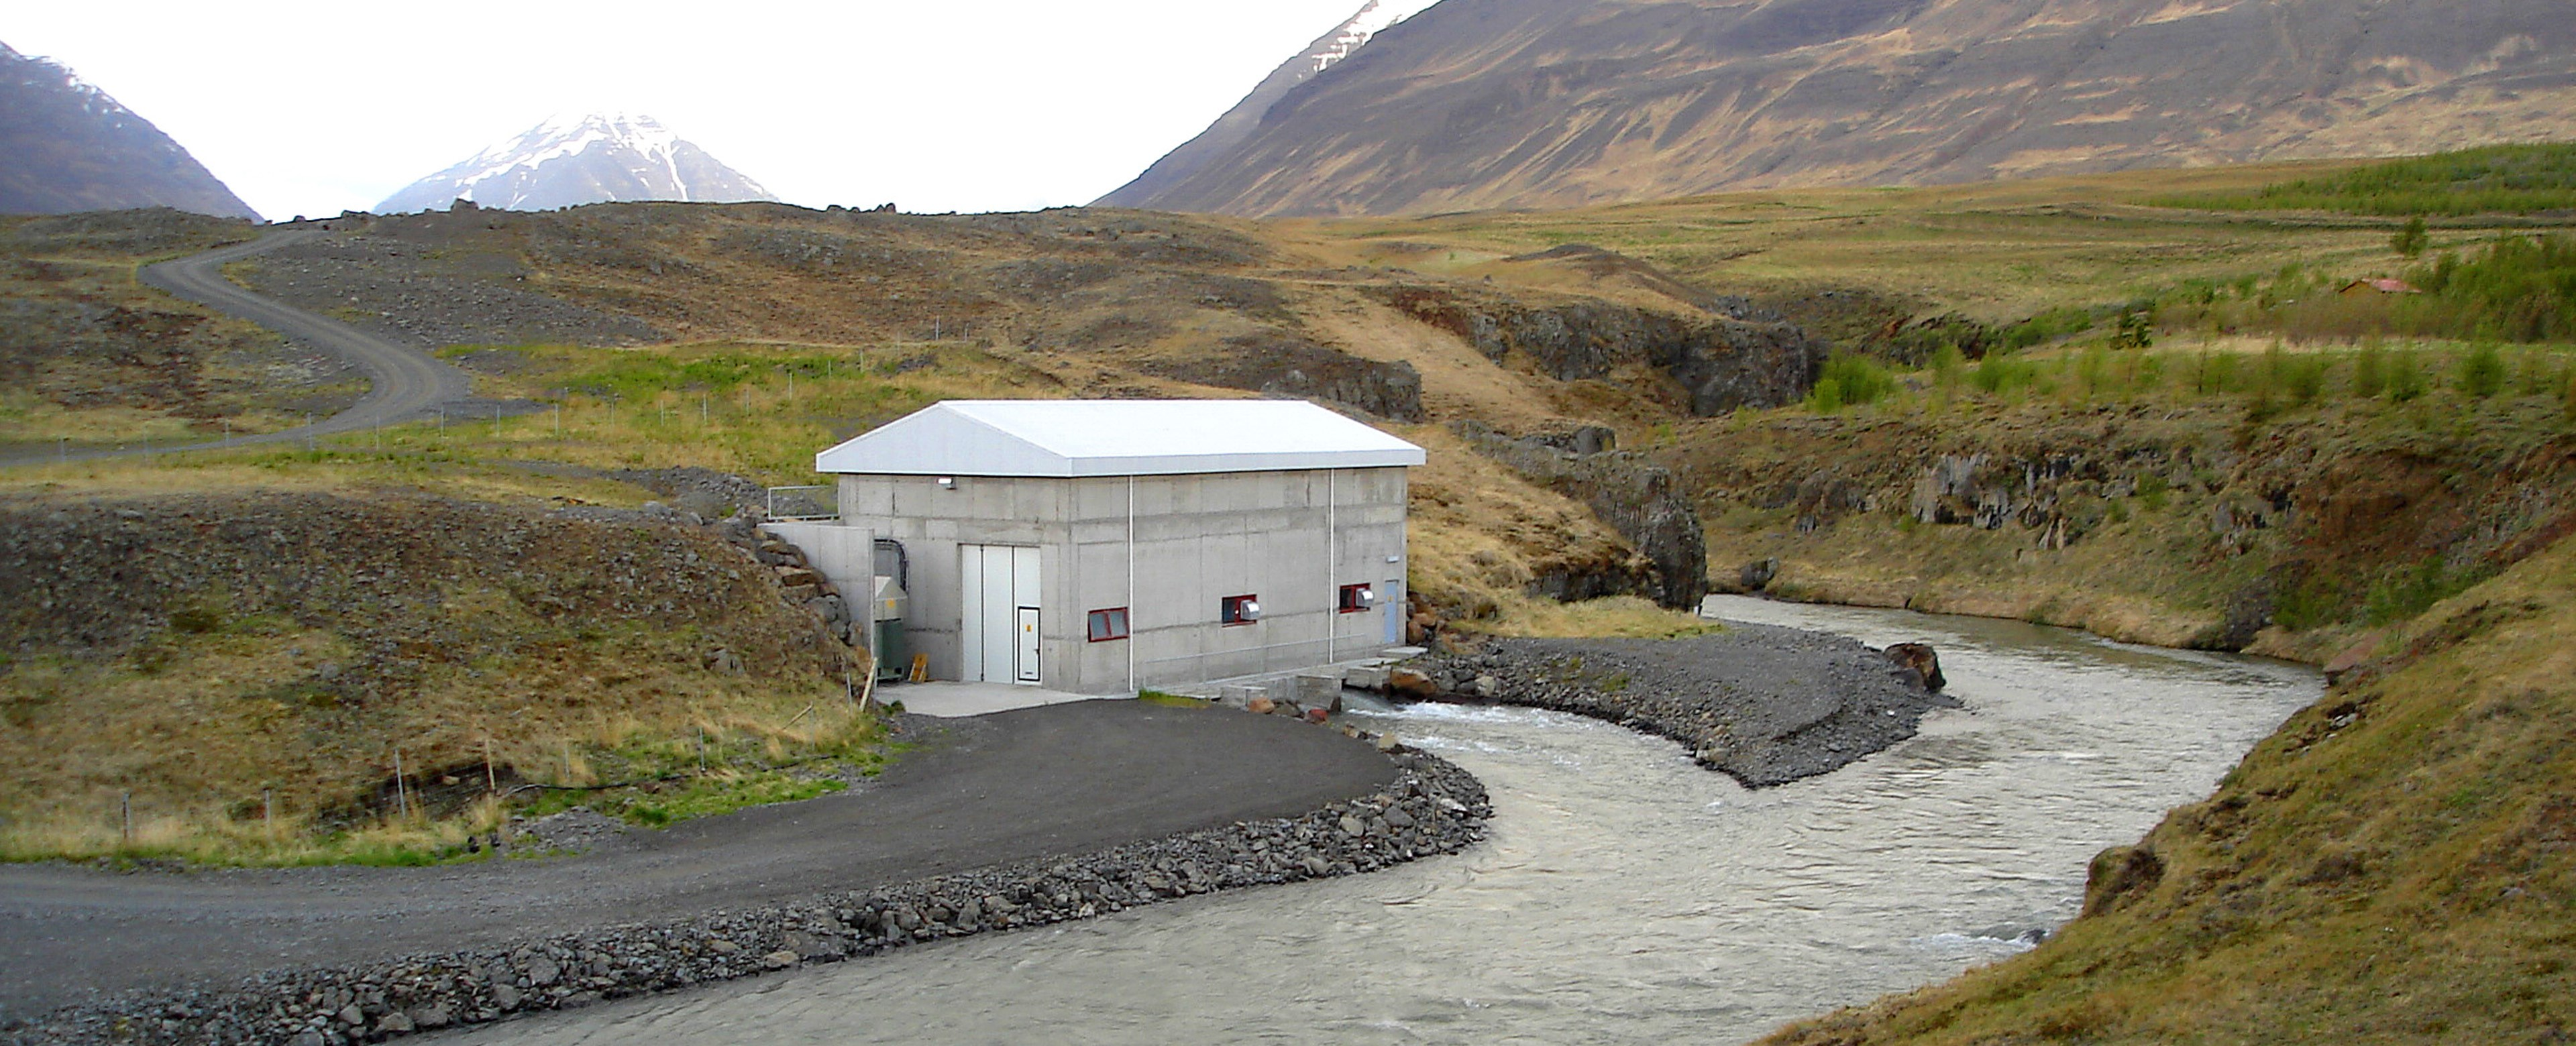 Mini Hydroelectric Dam : Small hydroelectric power hydro engineering